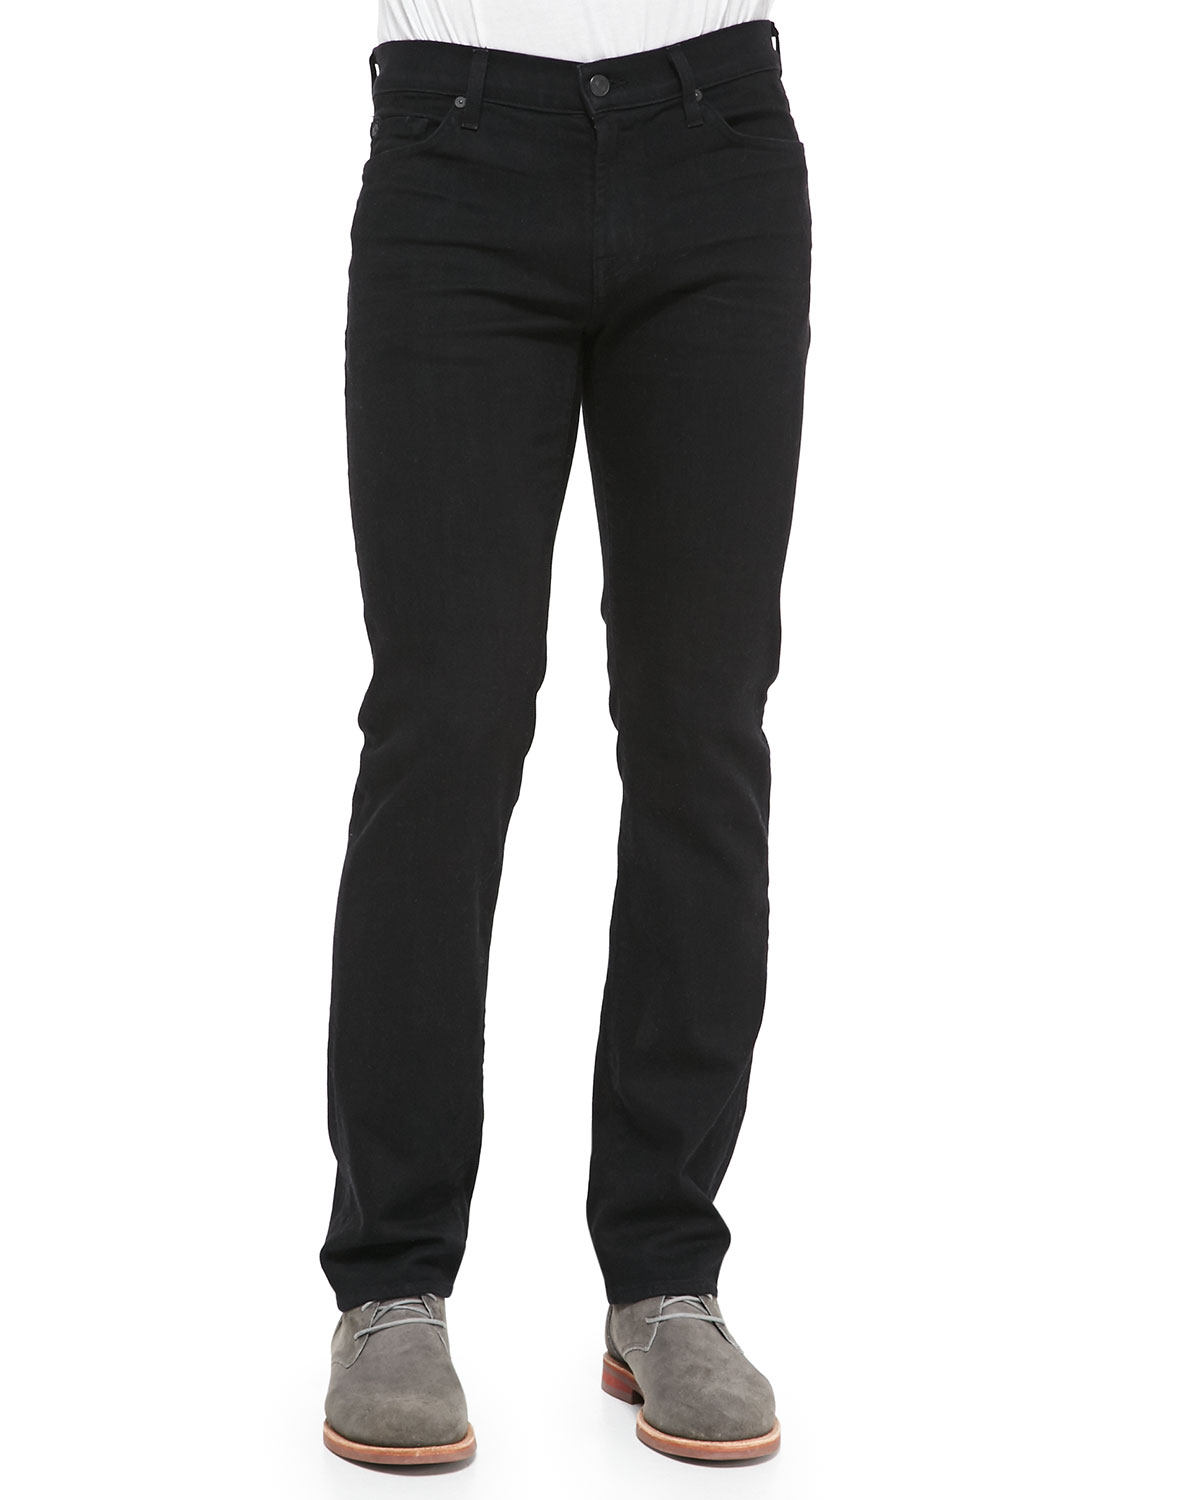 Men's Luxe Performance: Slimmy Nightshade Jeans